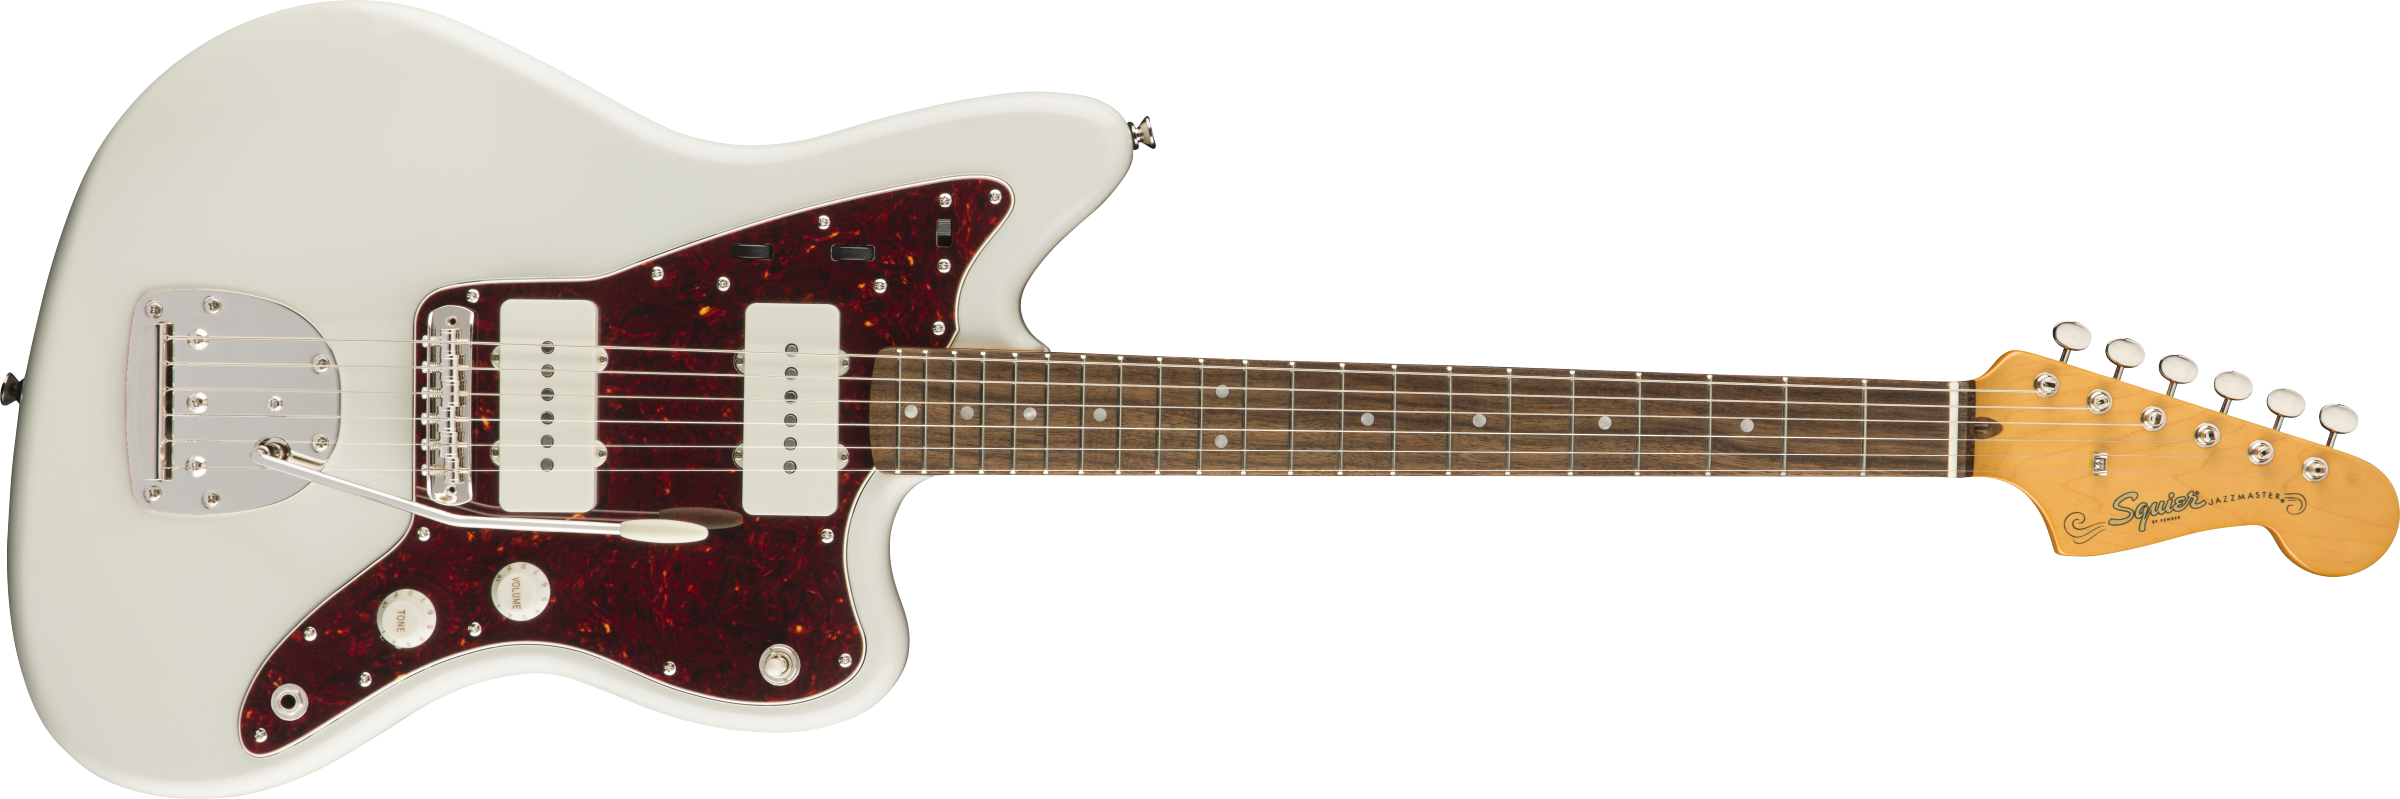 Fender Squier Classic Vibe 60s Jazzmaster OWT